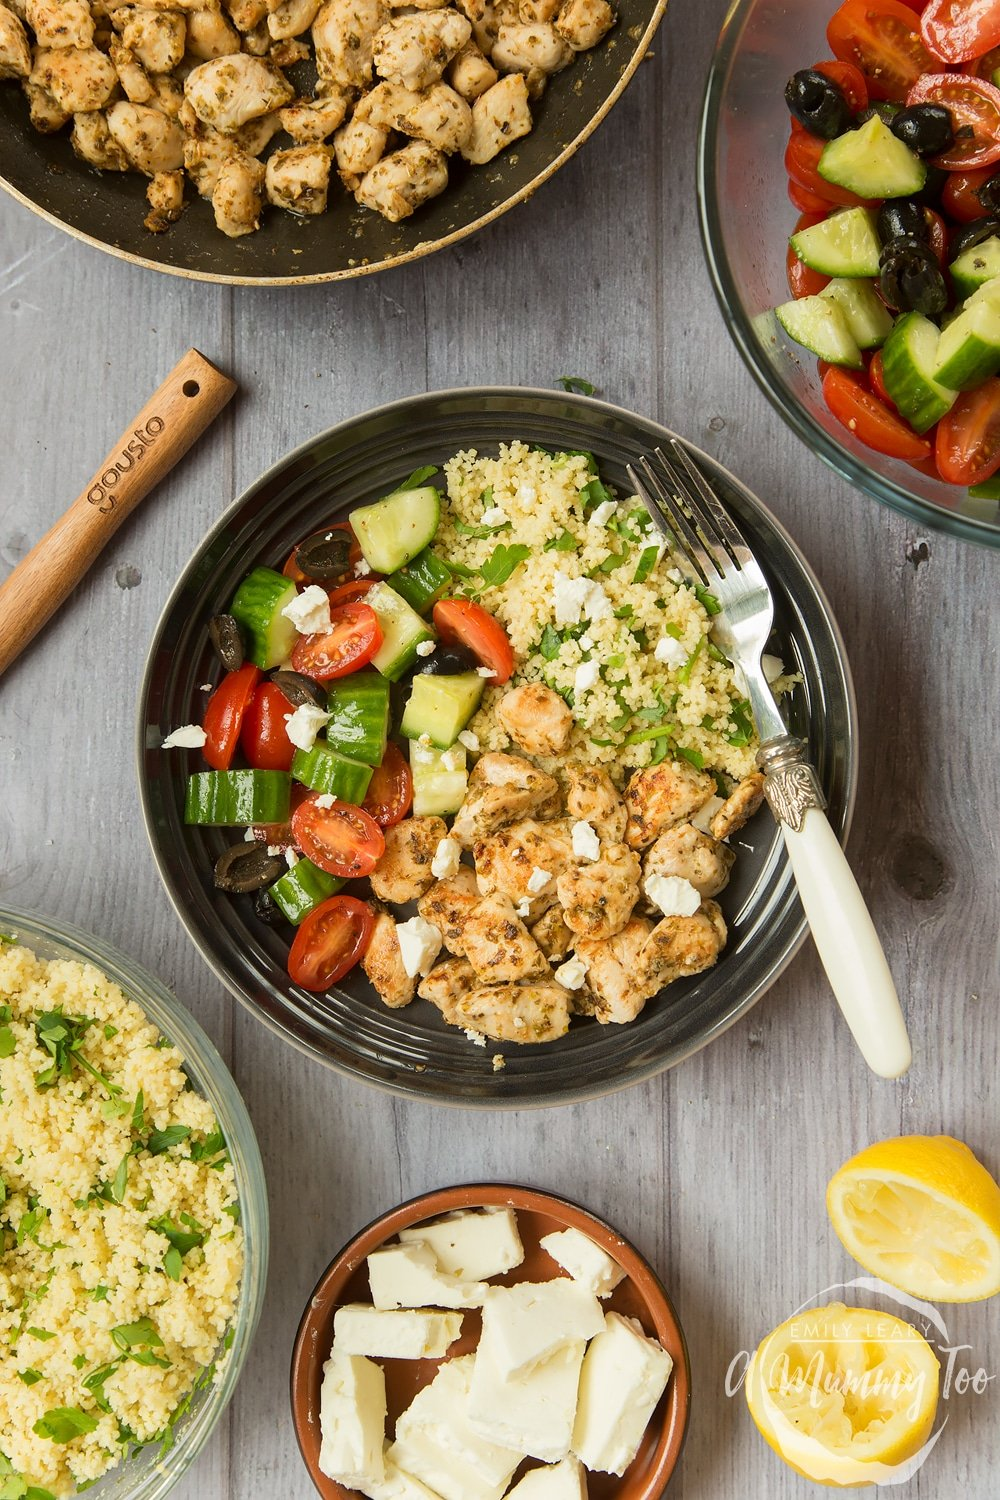 Speedy Greek chicken salad with seasoned chicken, salad and herby couscous